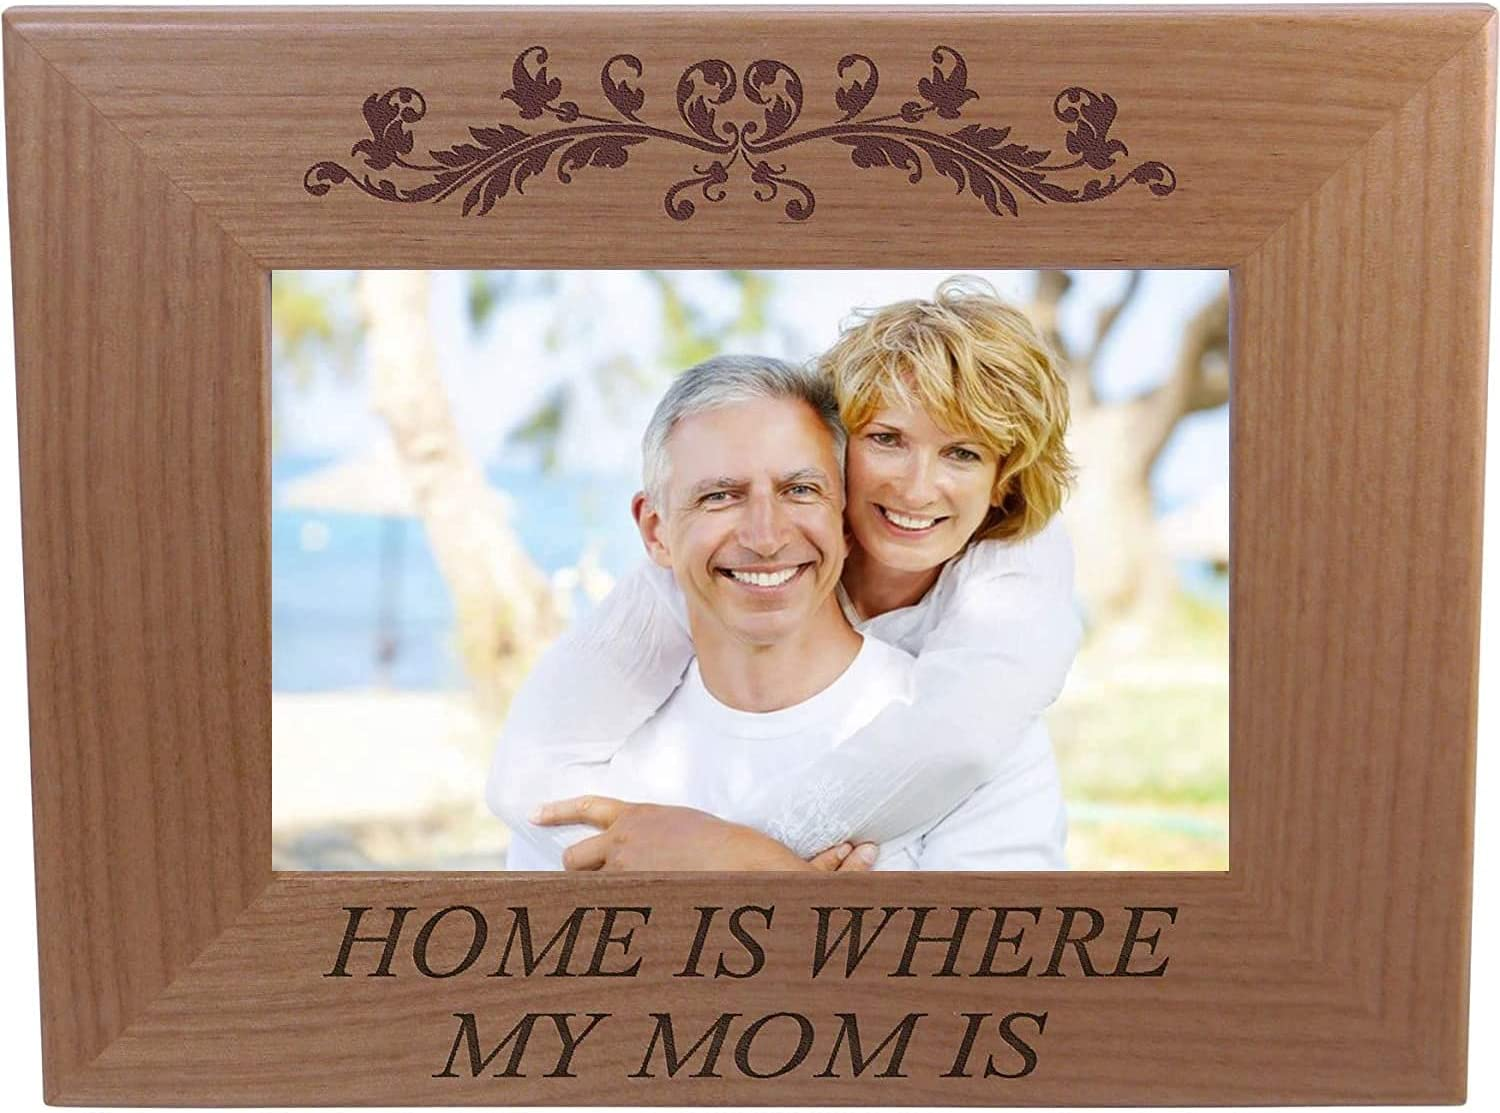 Home Seasonal Wrap入荷 is where my mom - Engraved Wood Natural Picture Alder 販売 Ha